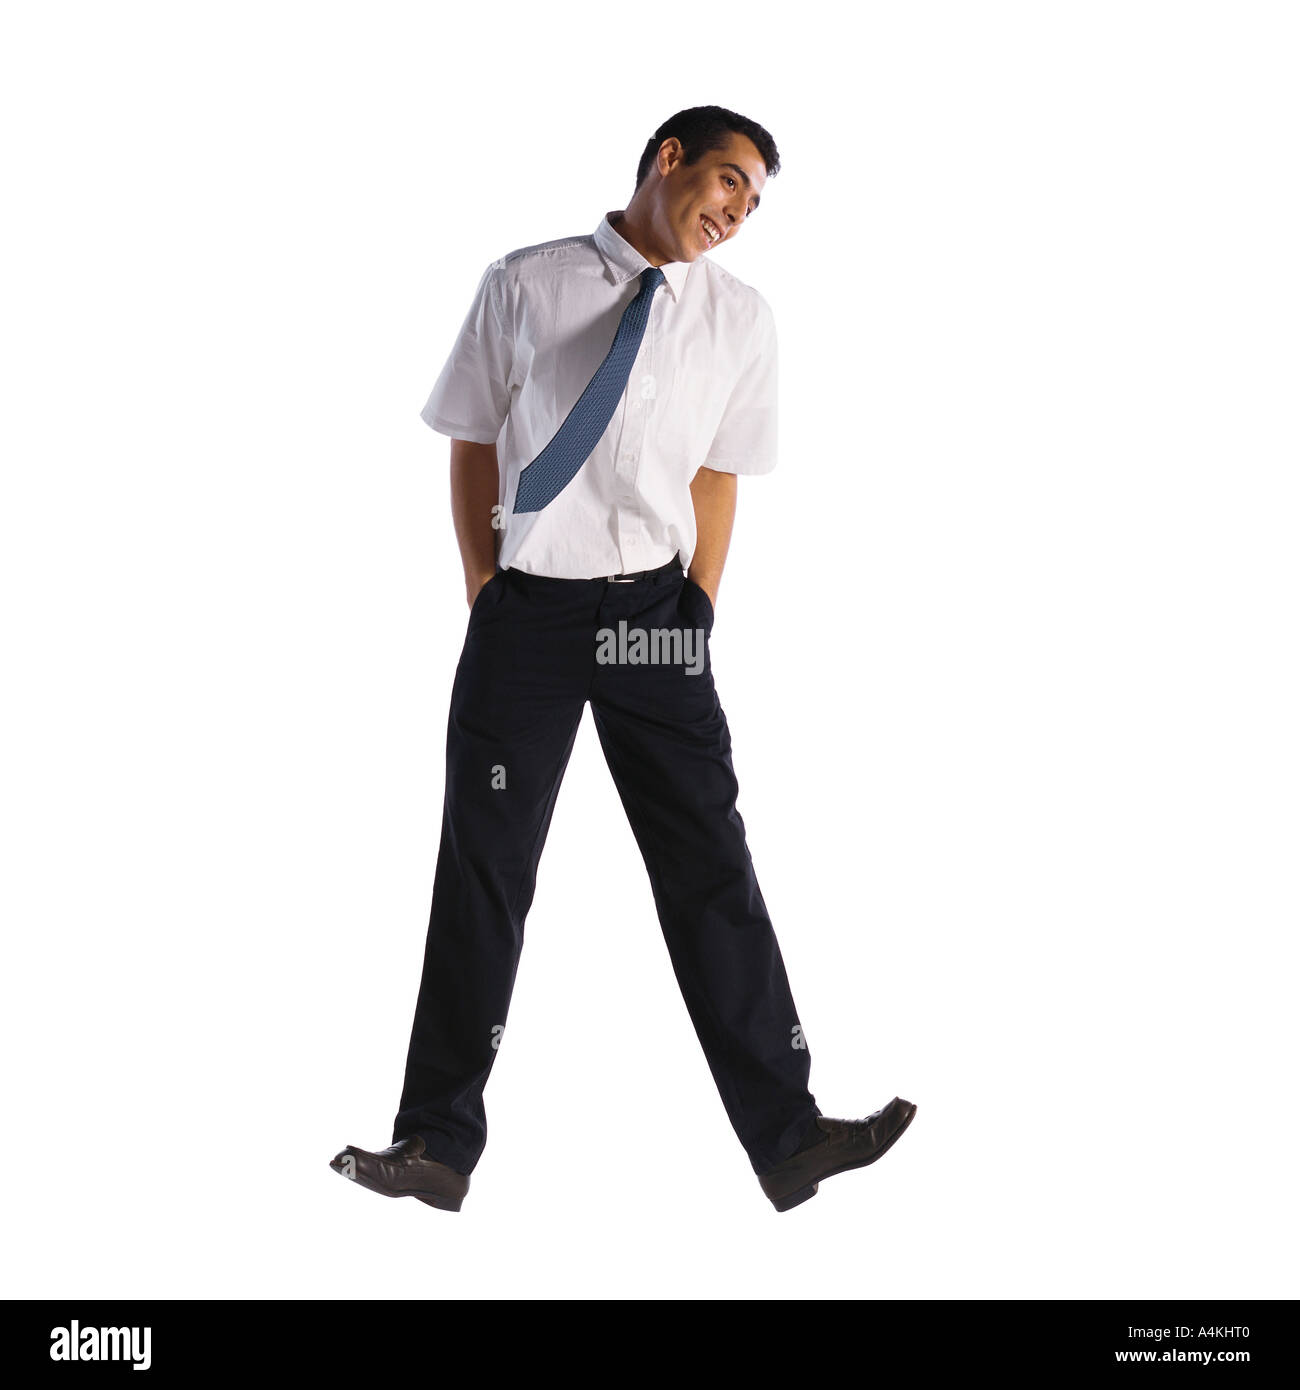 Man jumping with hands in pockets - Stock Image